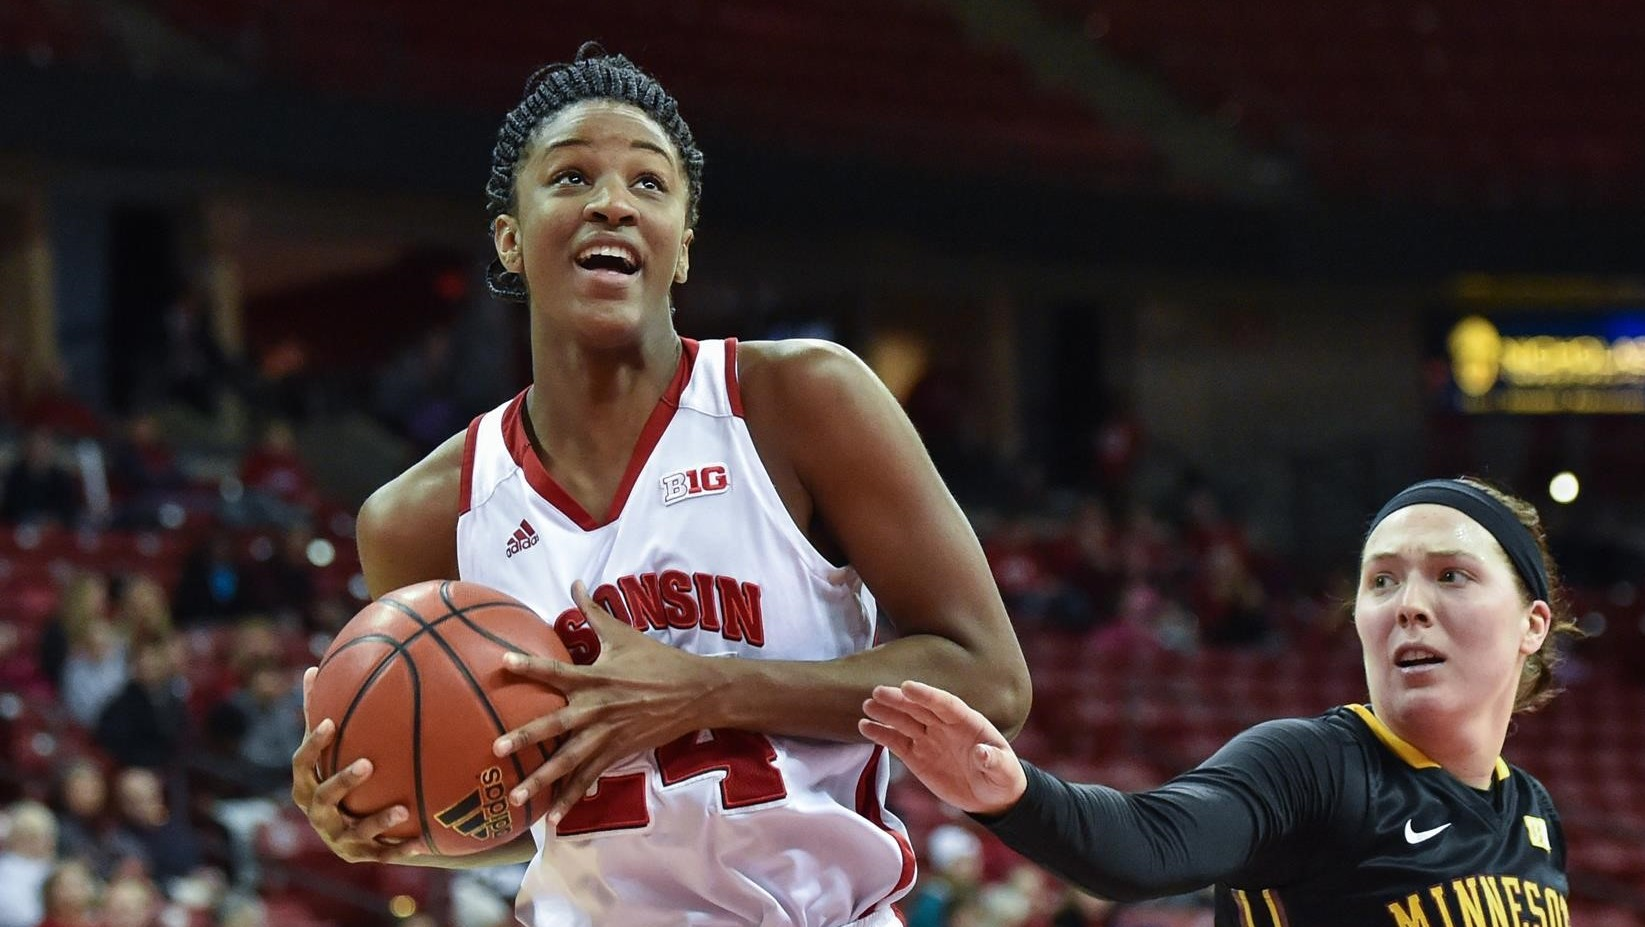 Wisconsin: Junior forward Malayna Johnson to miss 2015-16 season due to torn ACL